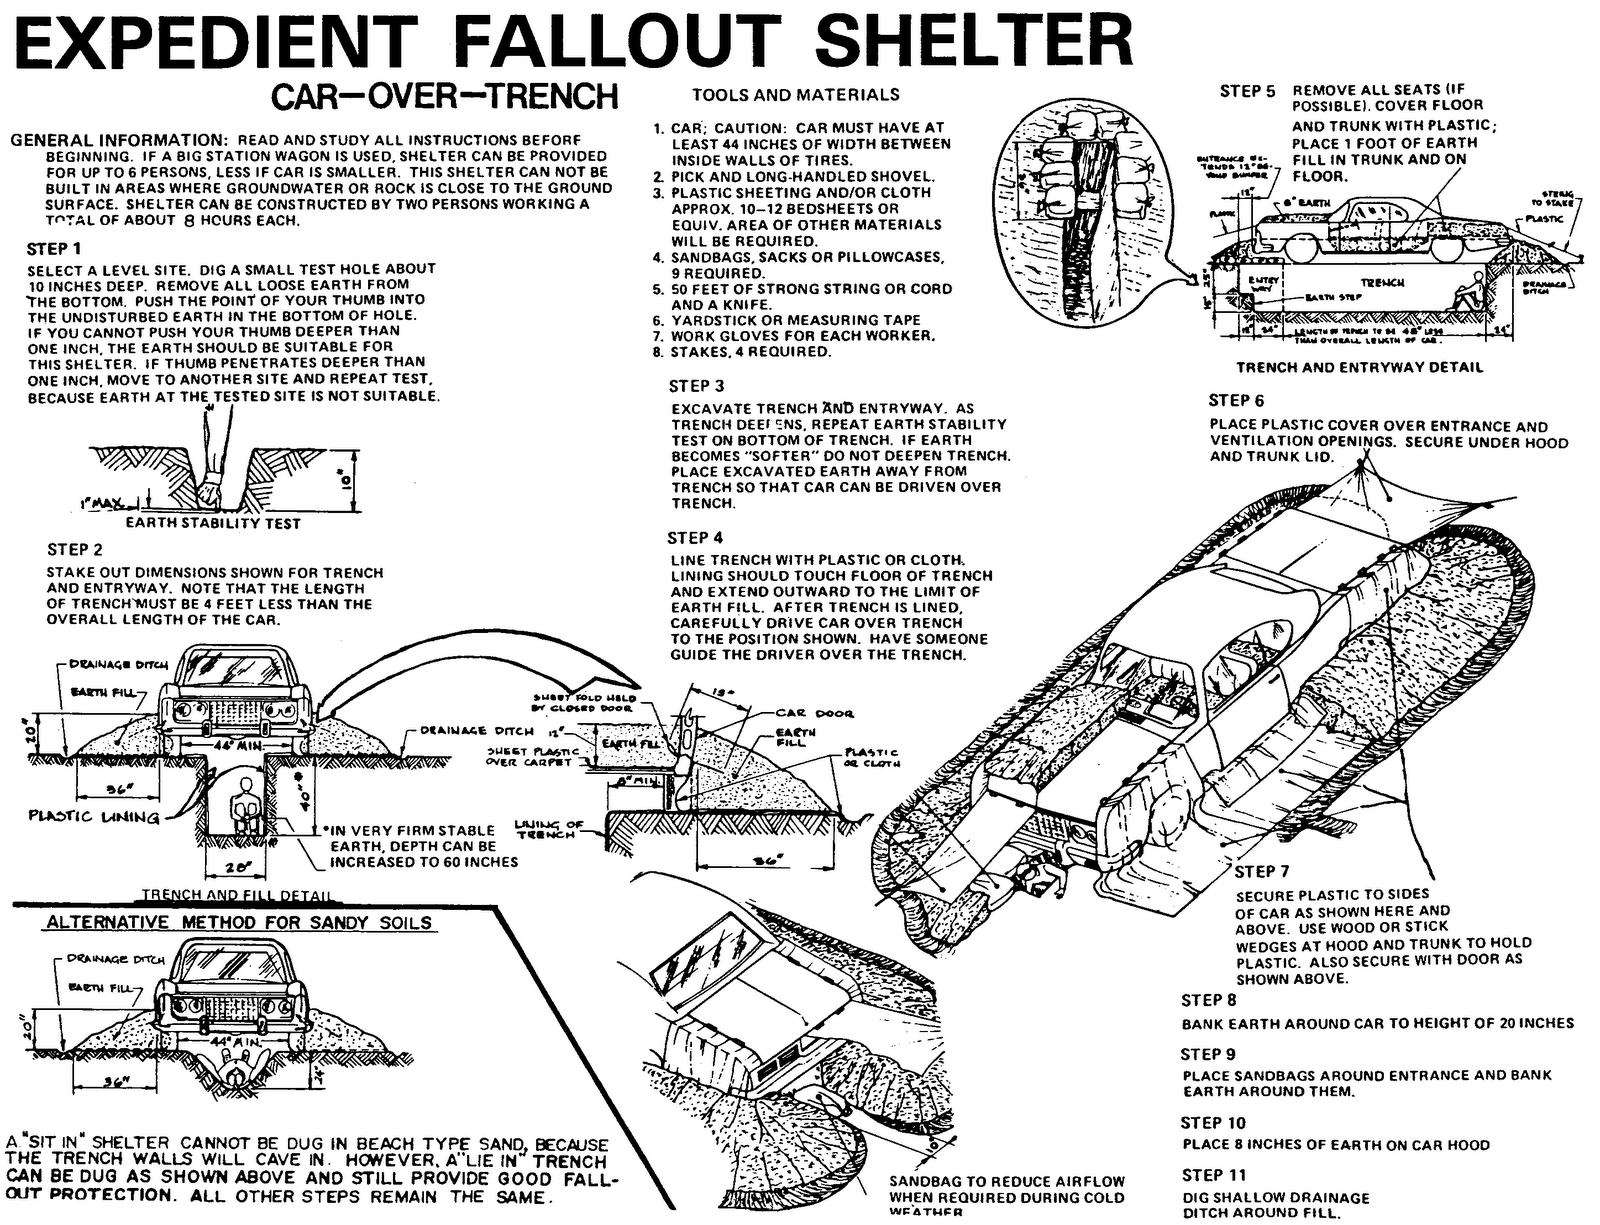 what can you use to make a cheap fallout shelter page 2